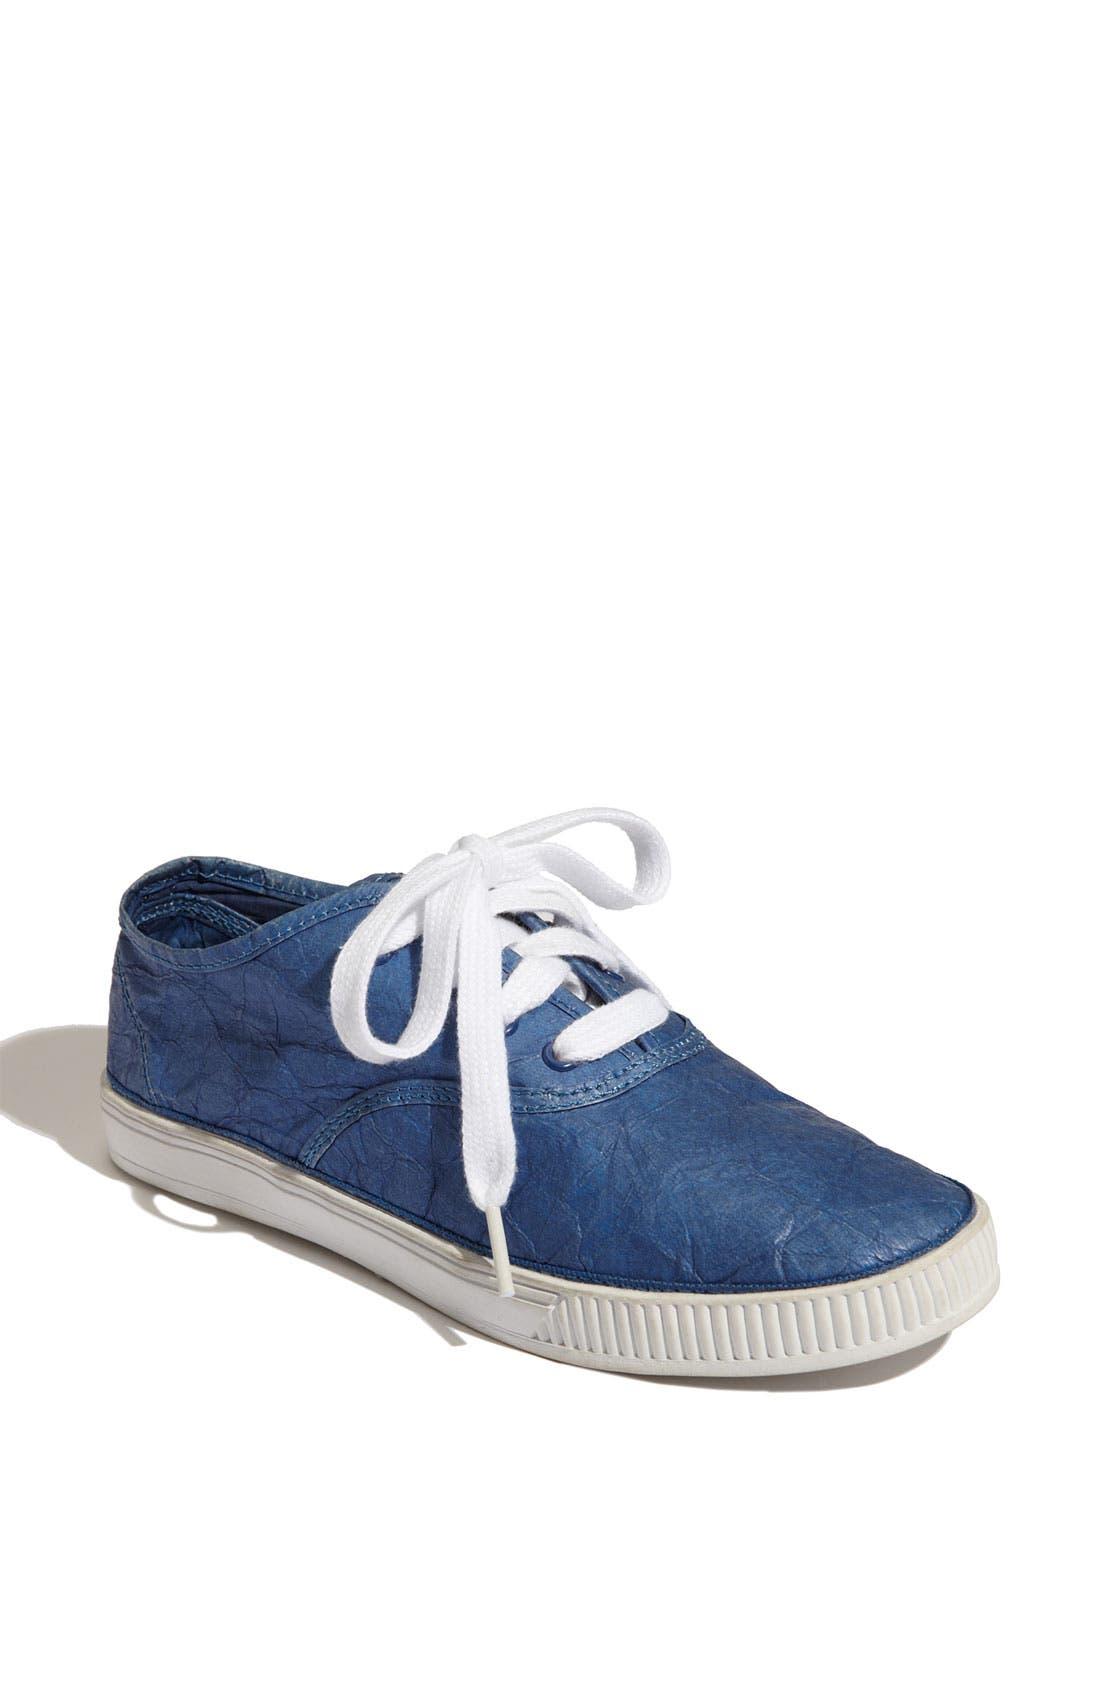 Alternate Image 1 Selected - Civic Duty 'Exhilaration' Sneaker